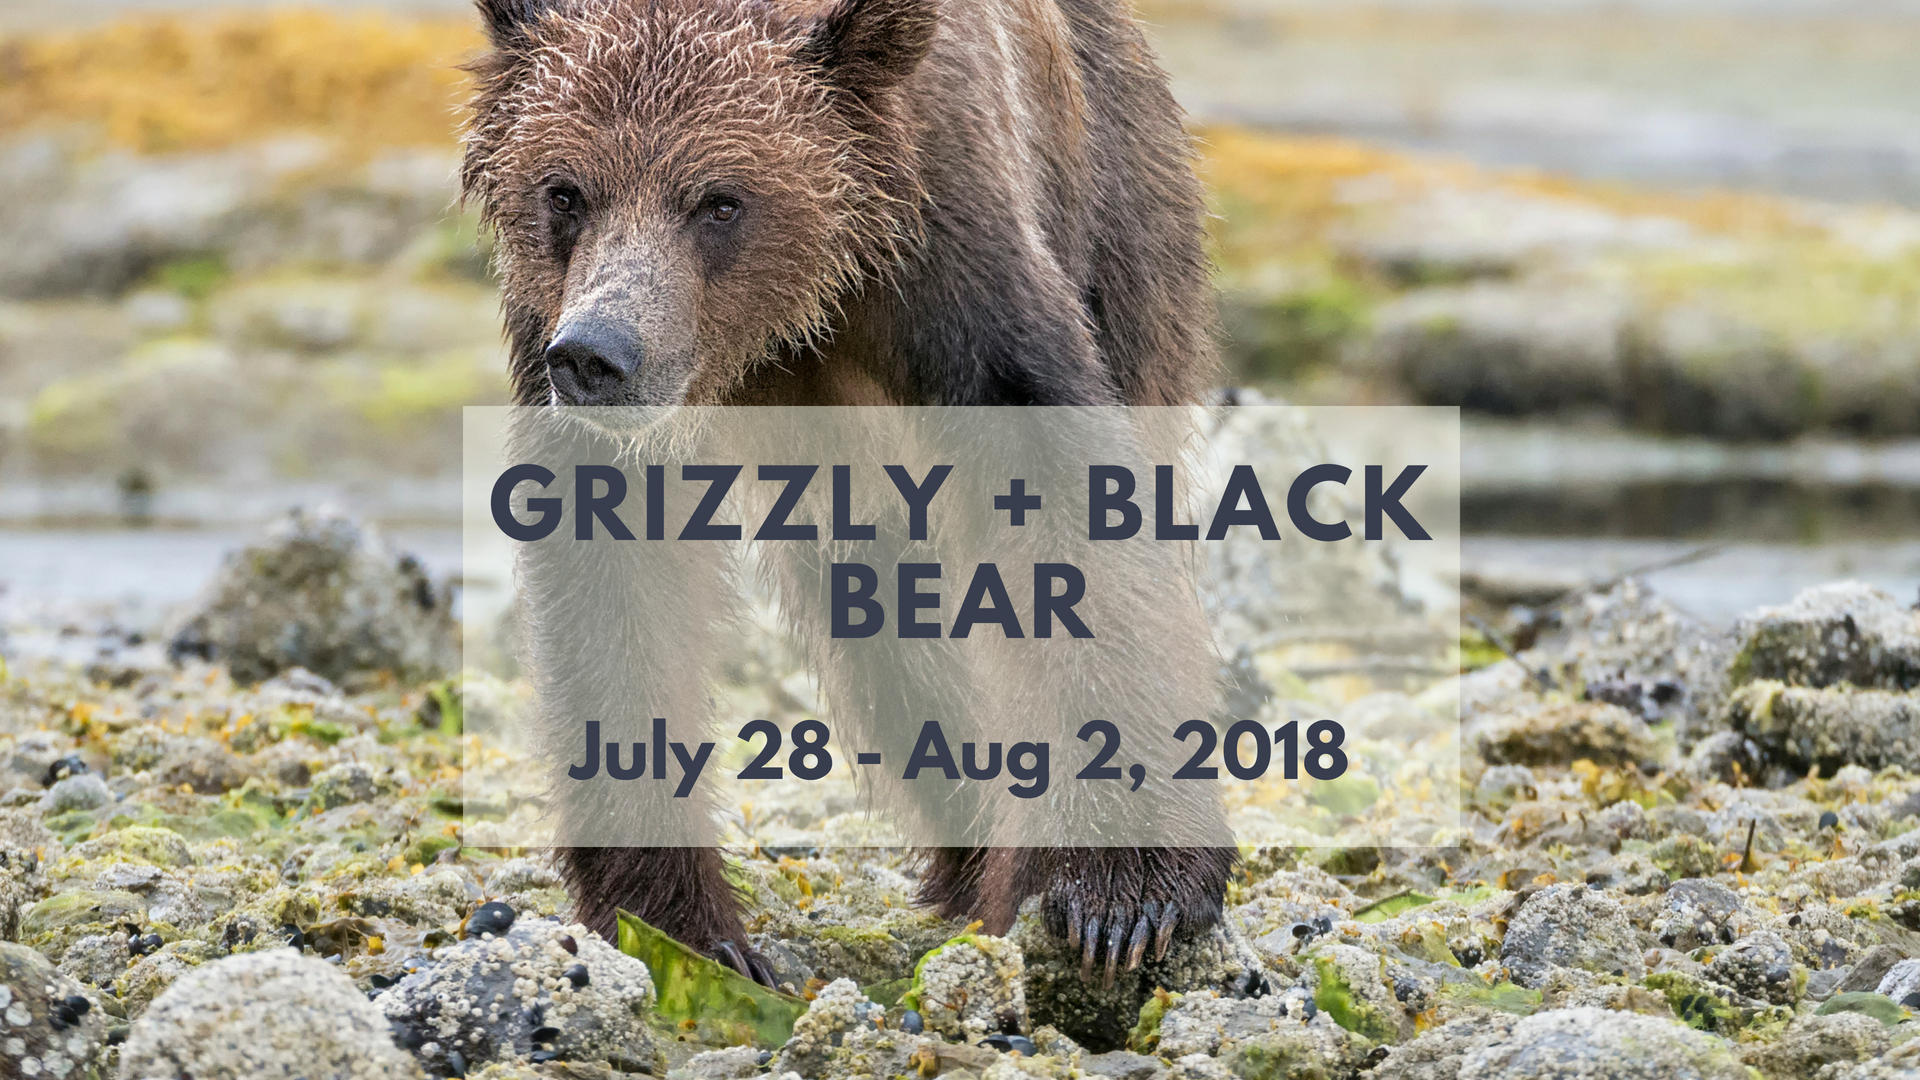 Grizzly & Black Bear Photo Tour - North of 49 Photography